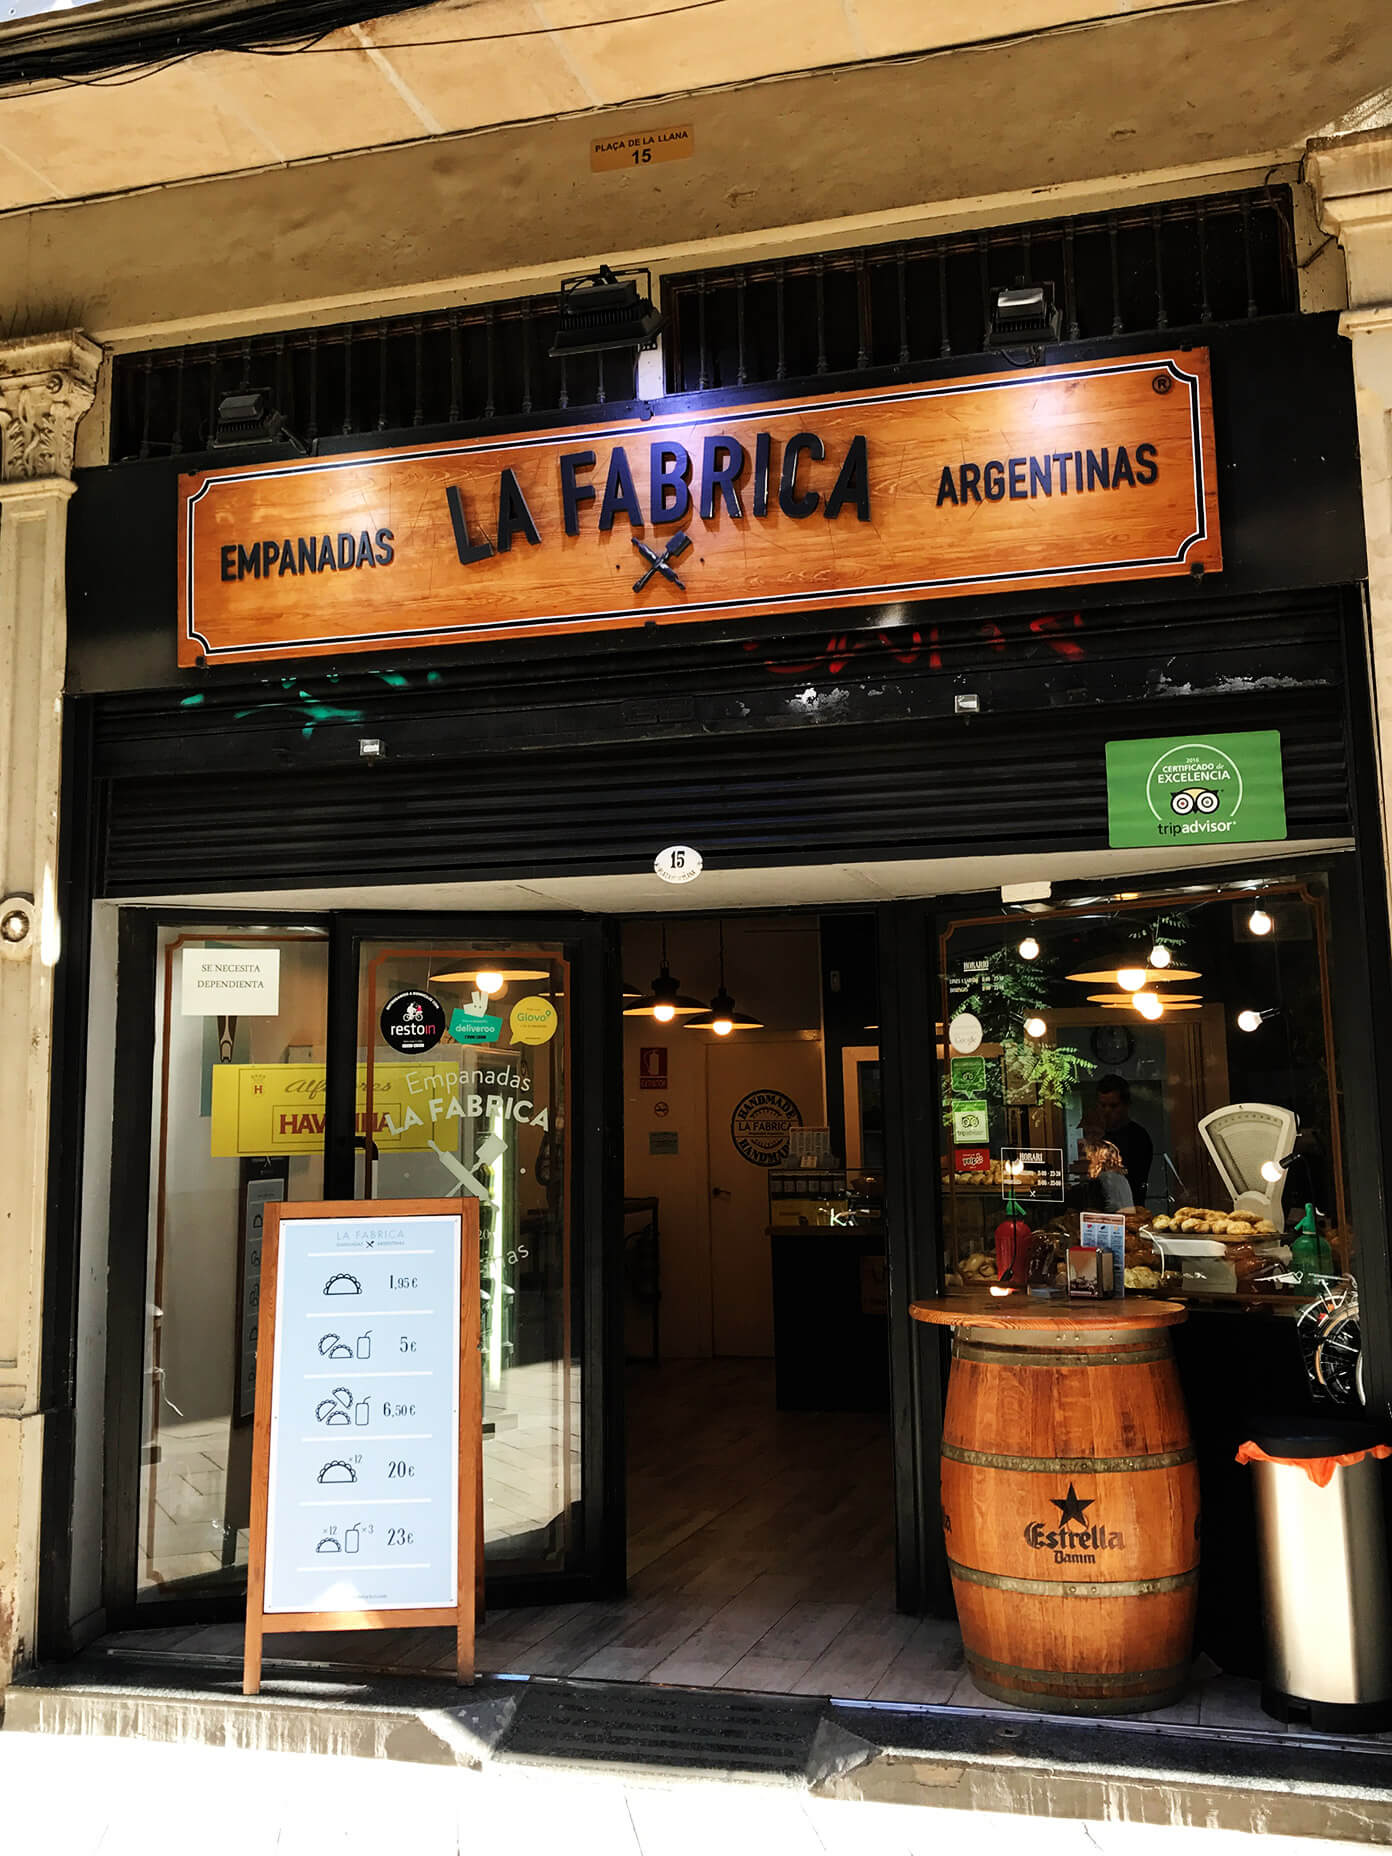 La Fabrica - cheap empanadas for lunch | Gimme Some Barcelona Travel Guide